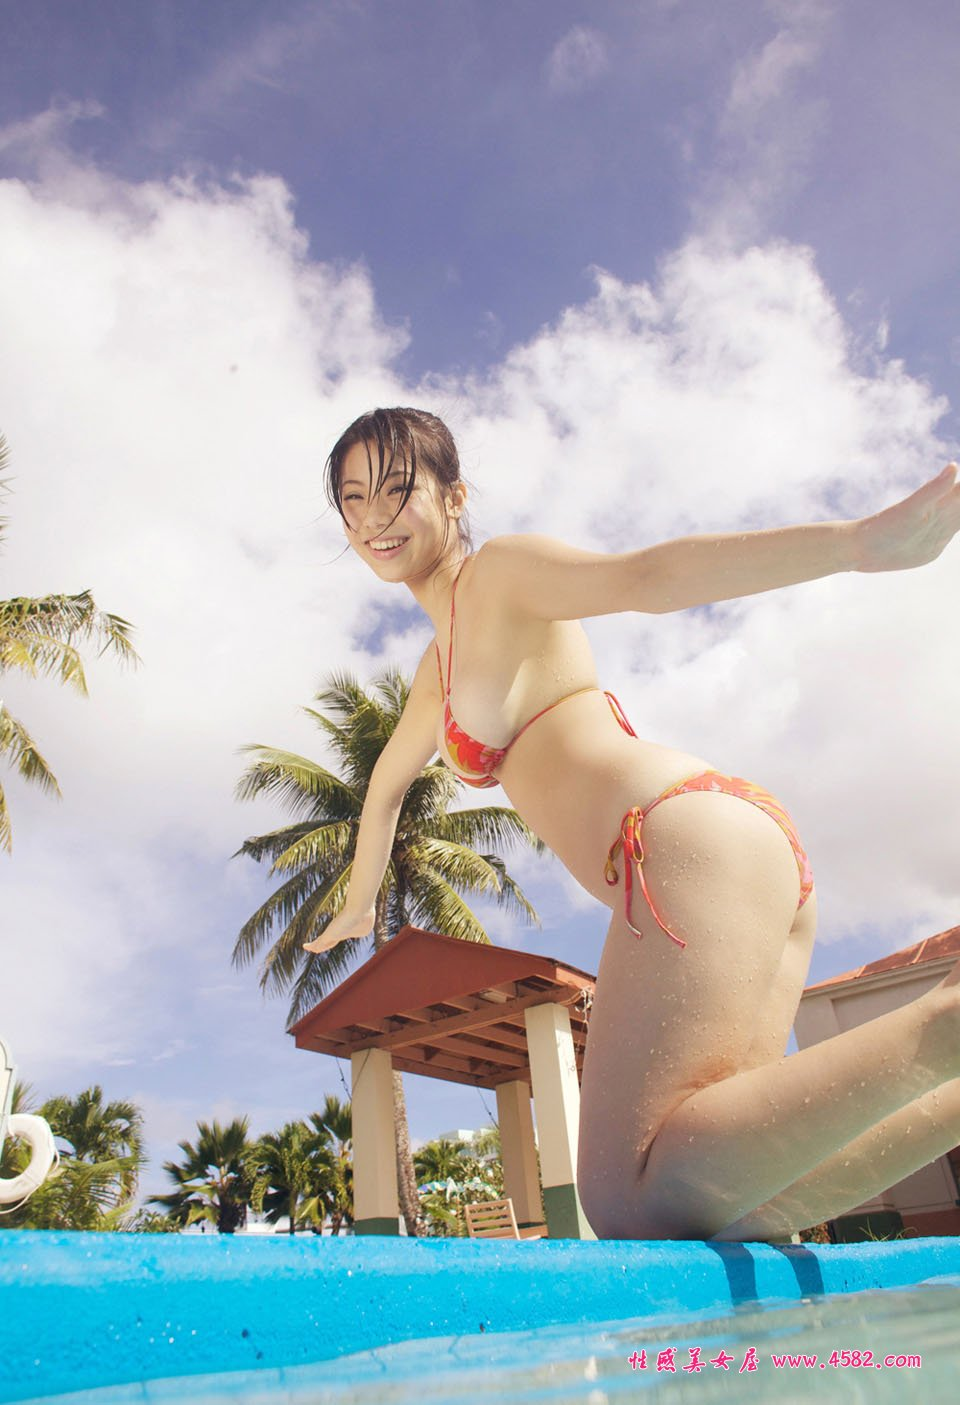 Pretty Chinese lady in swimming pool with XL big size page